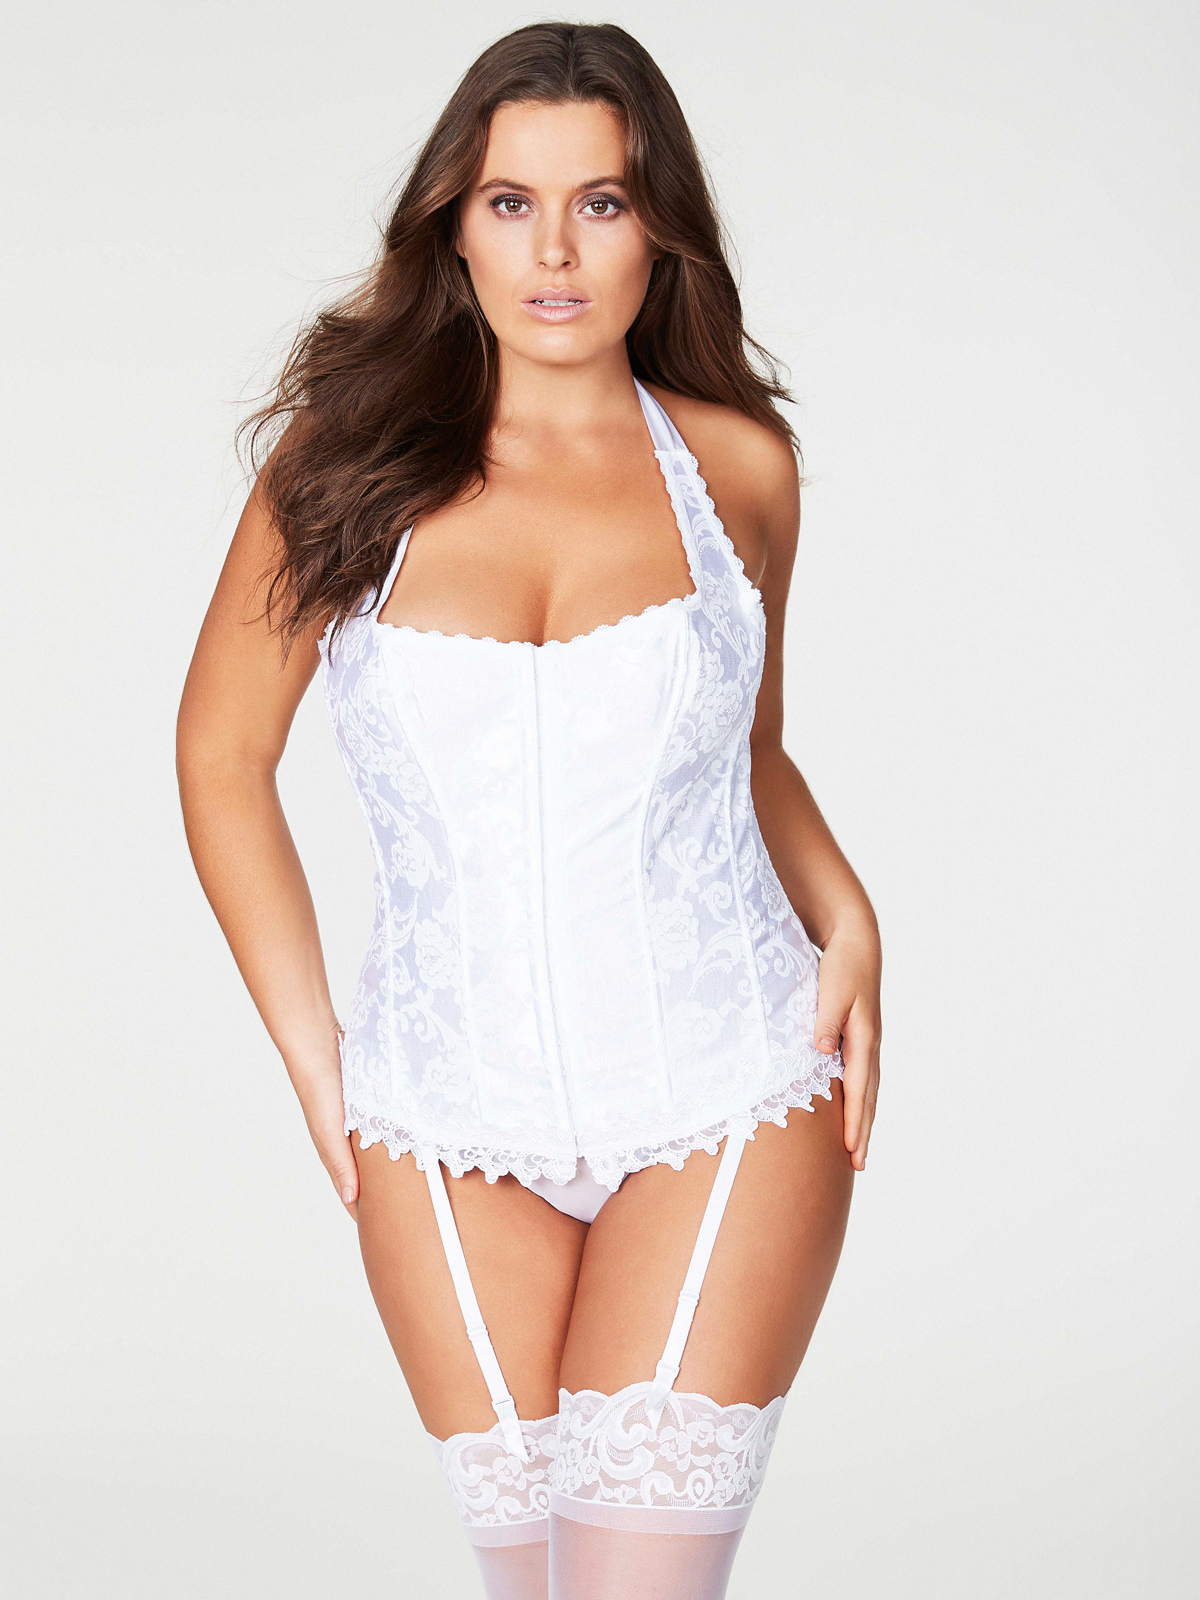 Woman modeling the Hollywood Dream Halter Bridal Corset Plus-Size from Frederick's of Hollywood